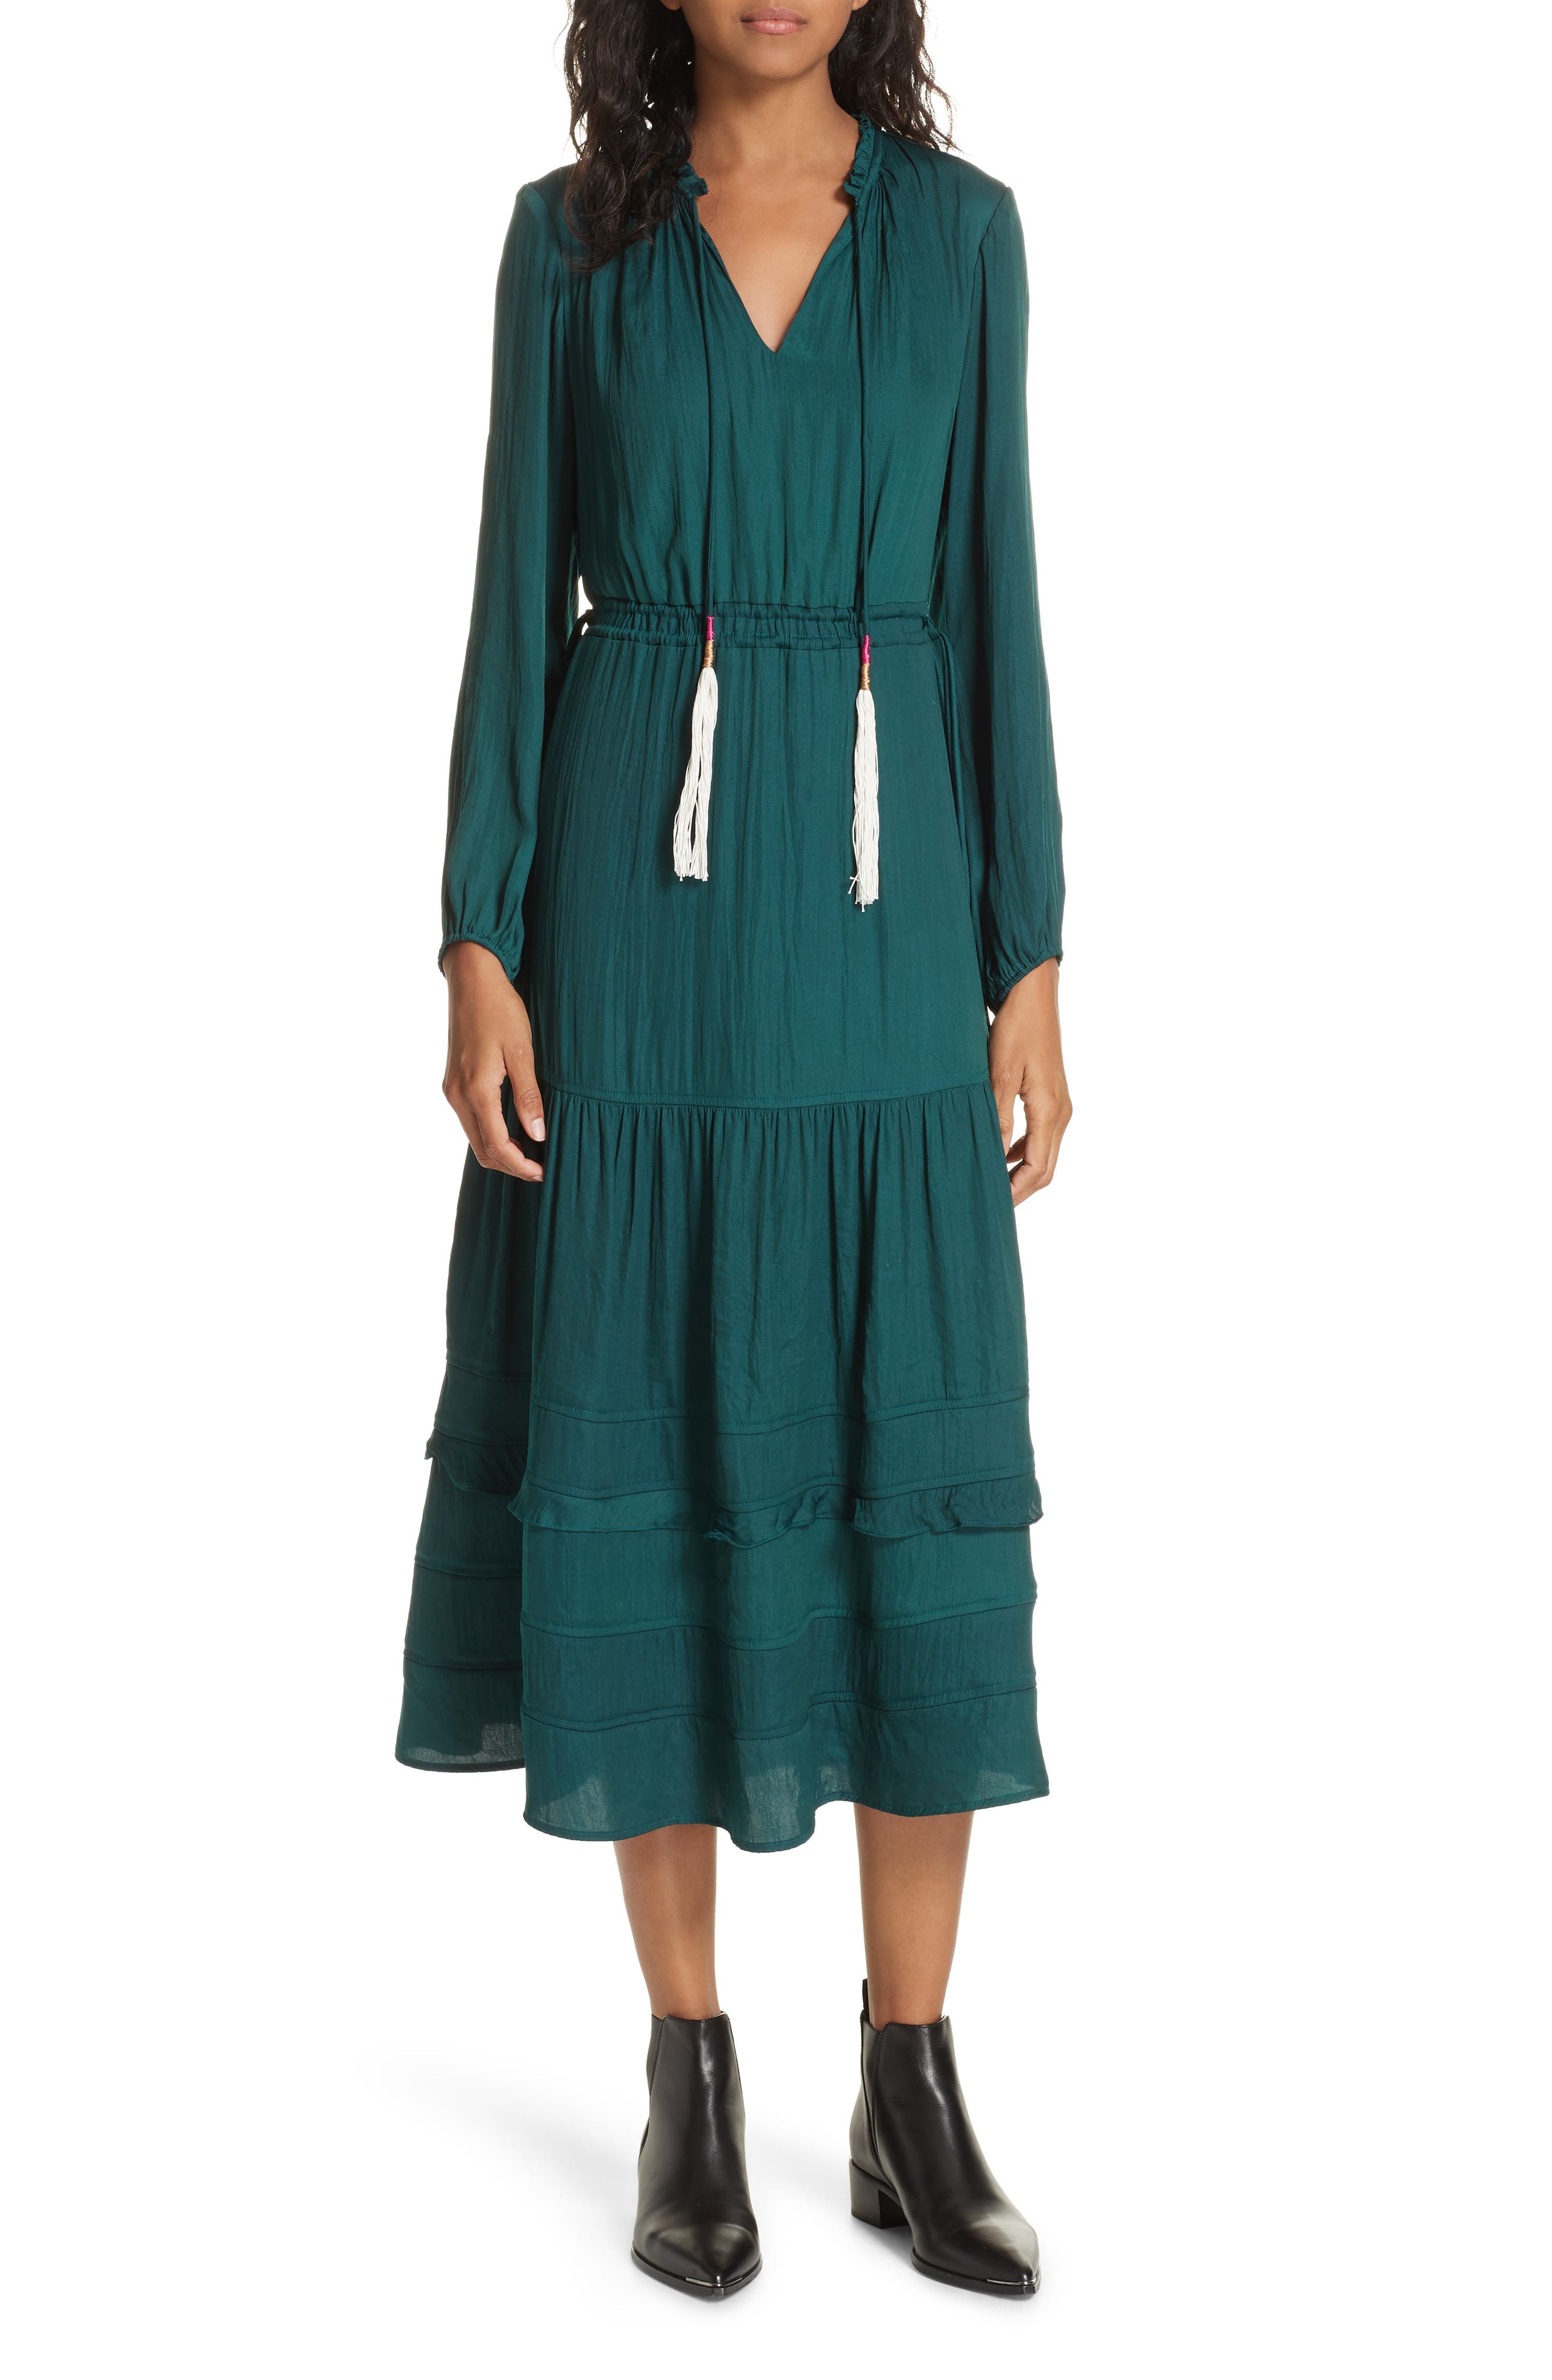 Tassel Tie Midi Dress,                             Main thumbnail 1, color,                             FOREST